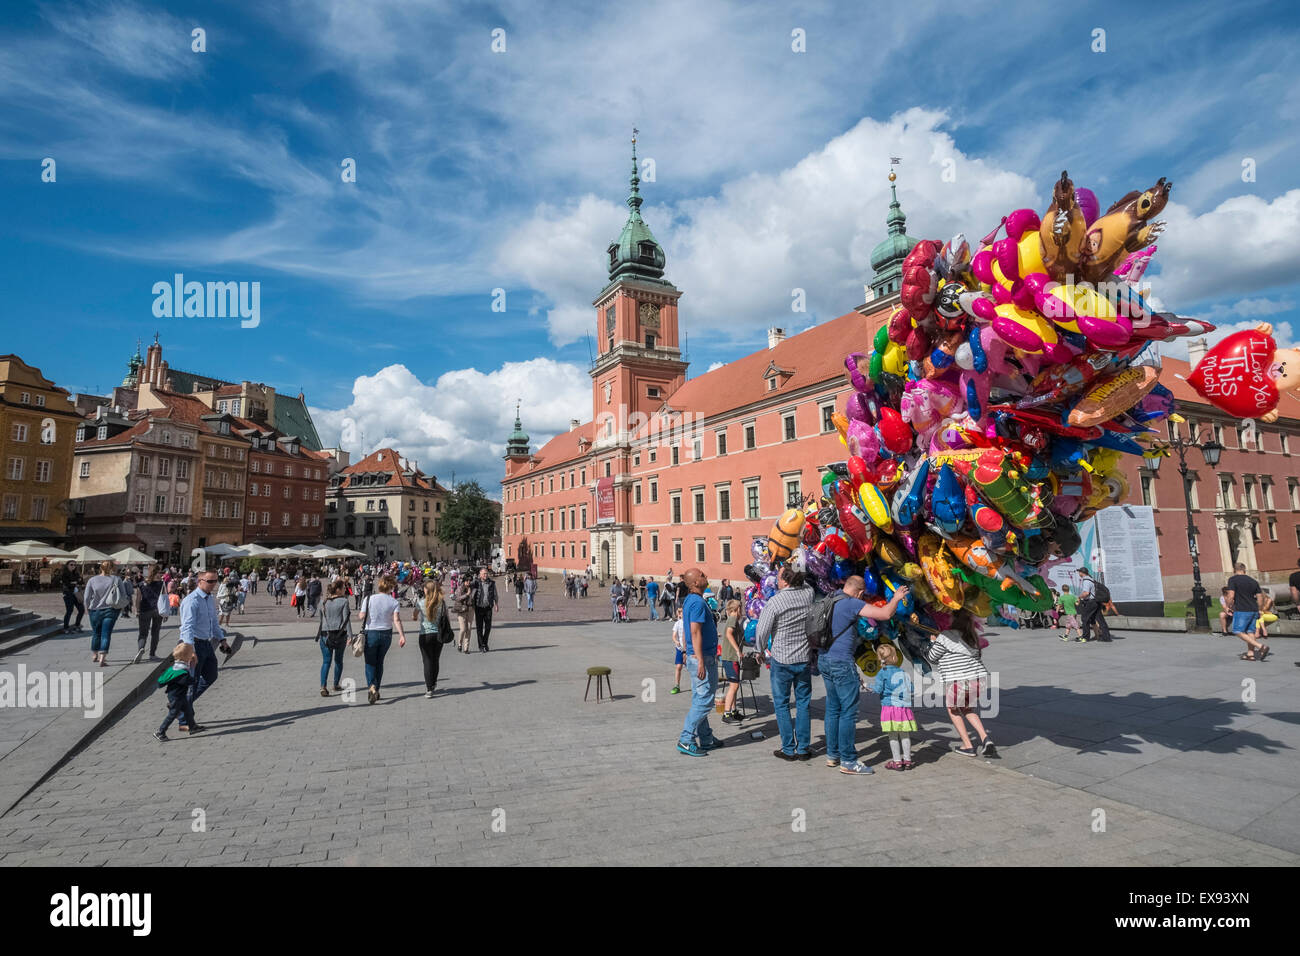 Balloon seller on Castle Square on a bright summers day, with Royal Castle building in background, Old Town, Warsaw, - Stock Image